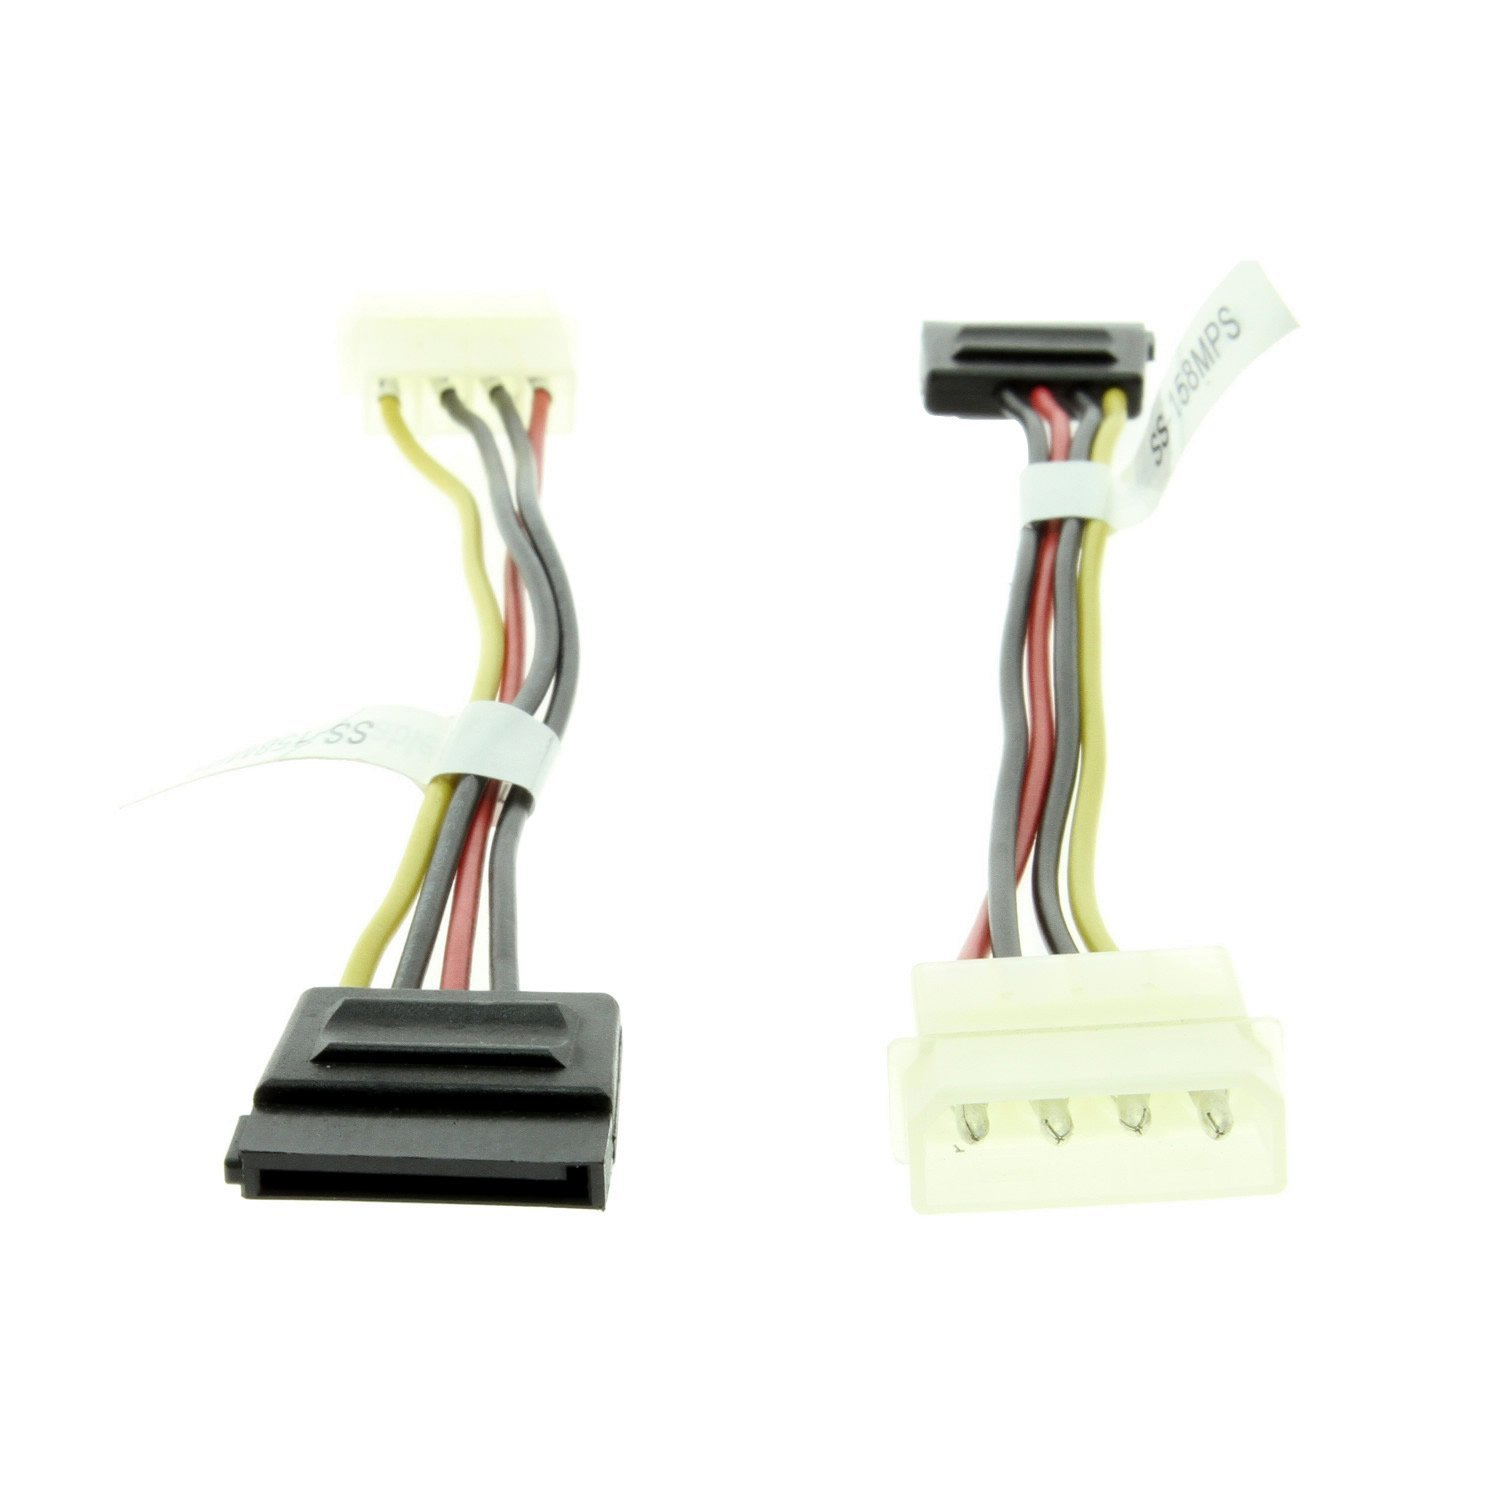 SATAGear Power Molex 4-position to one 15-position Serial ATA Adapter